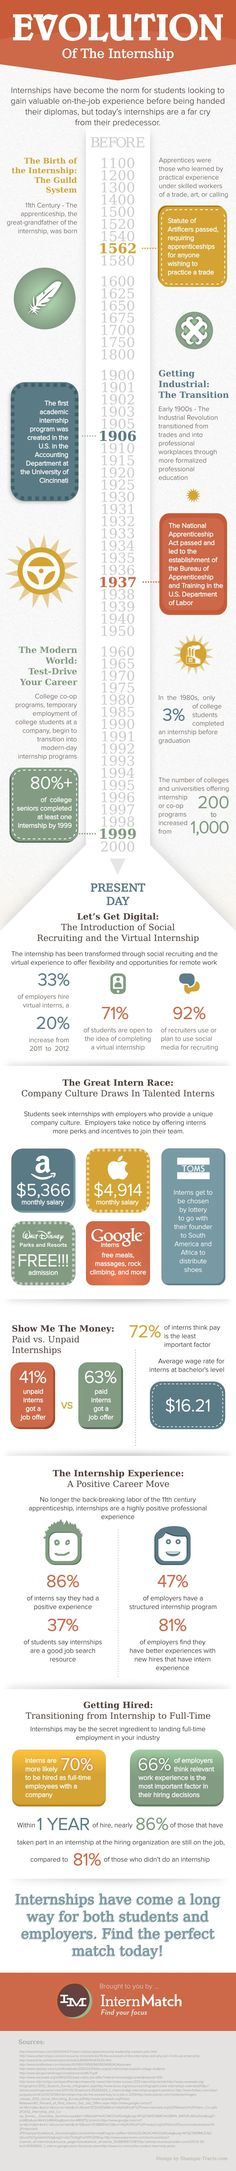 The History of Internships